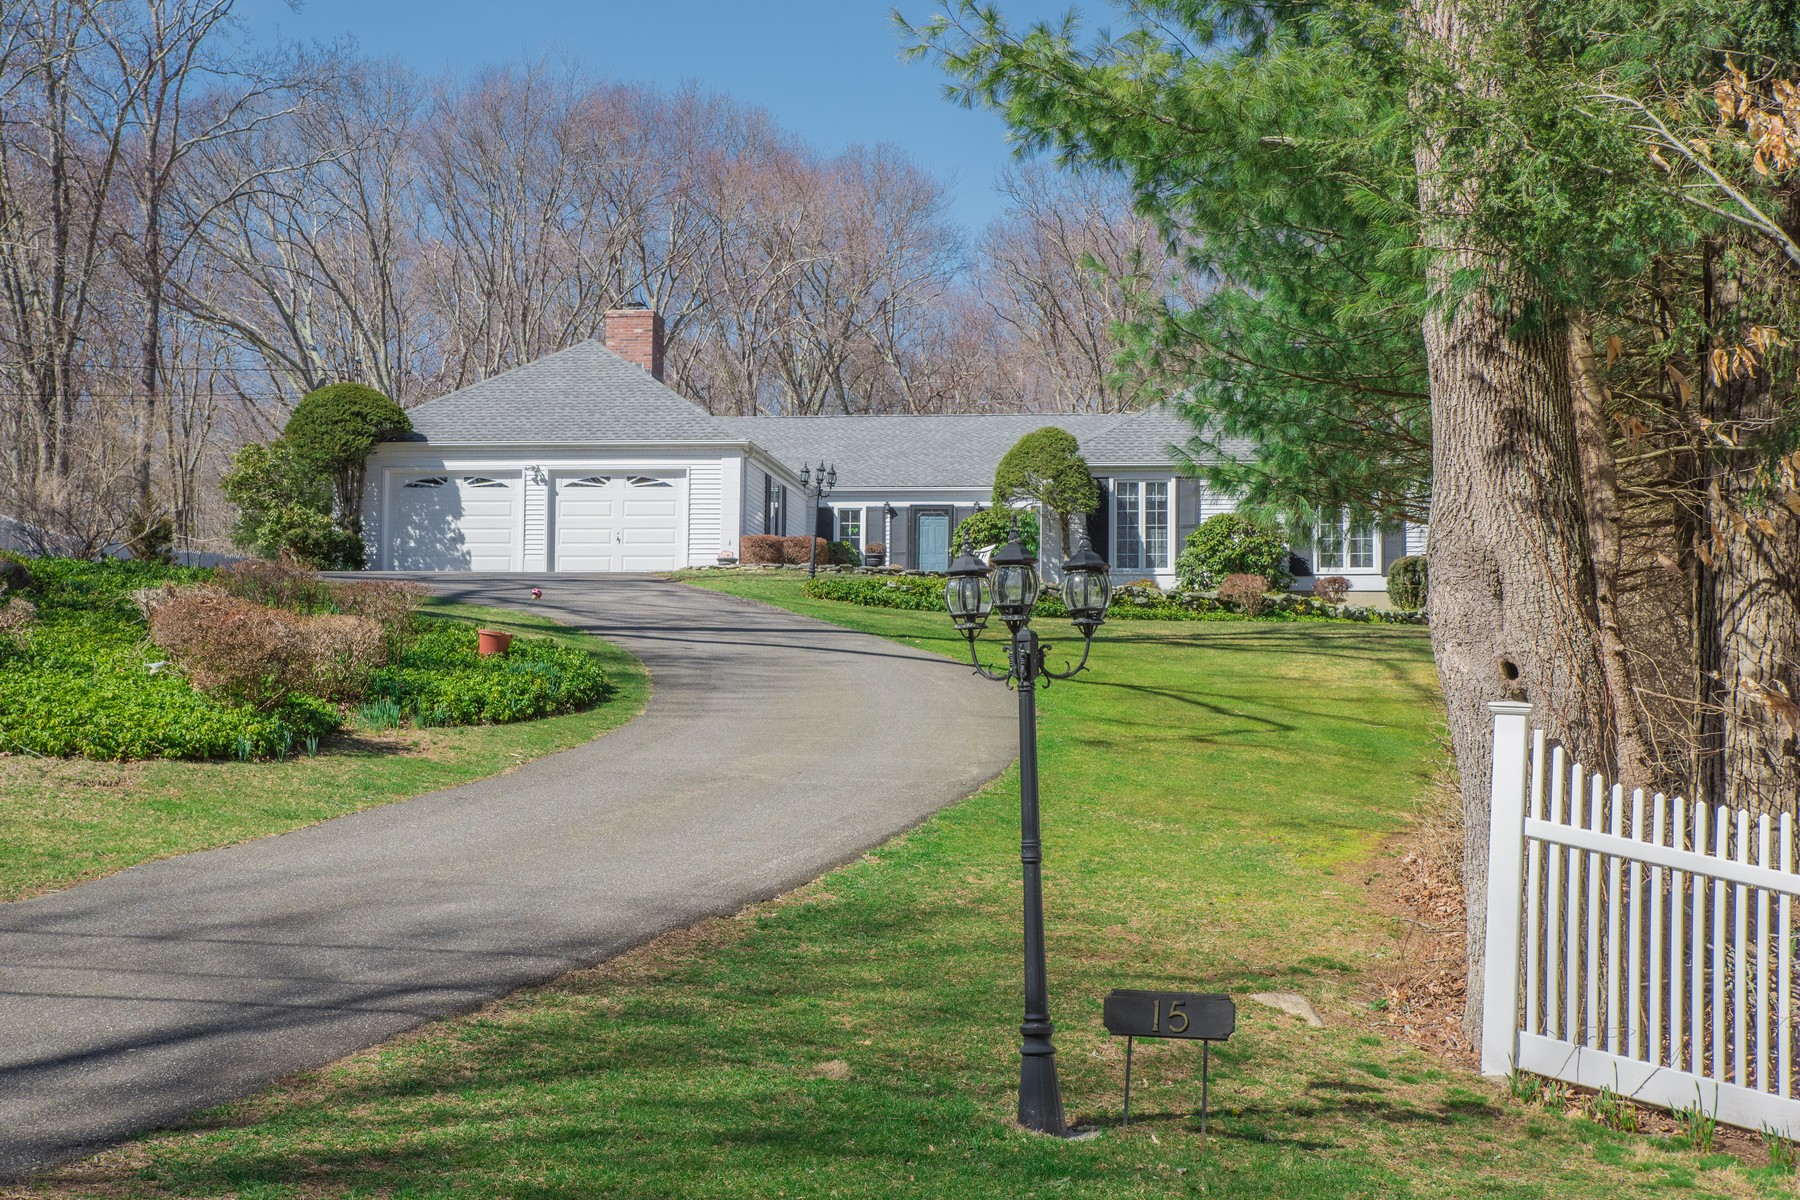 Single Family Home for Sale at Gracious ranch home offers elegance and comfort 15 Coult Ln Old Lyme, Connecticut, 06371 United States